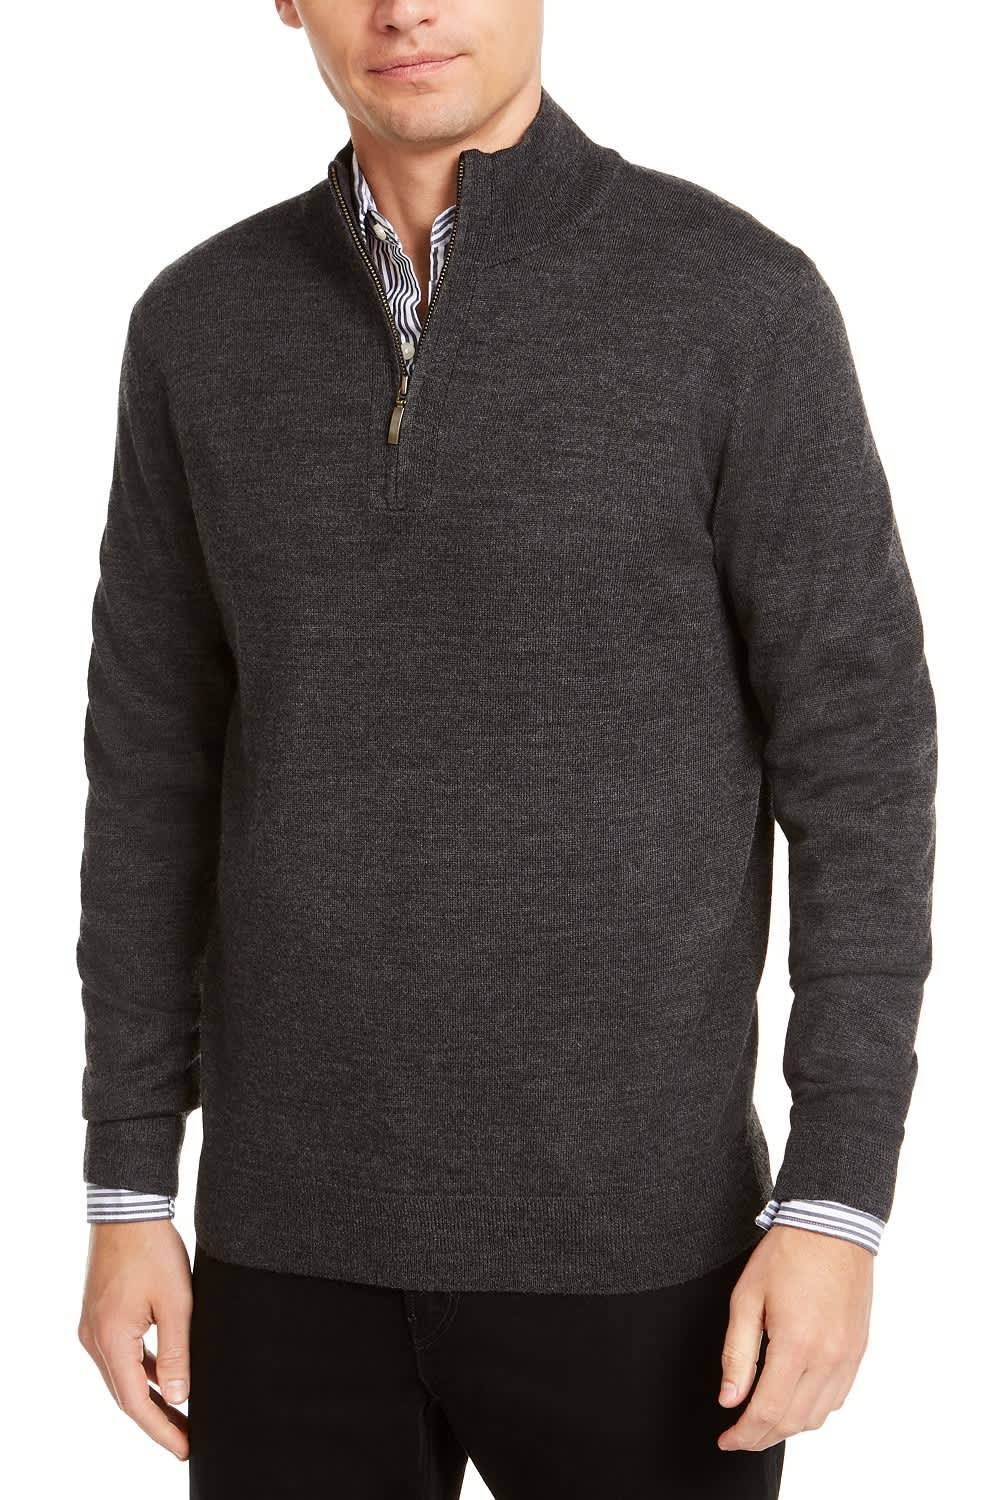 Club Room Men's Quarter Zip Merino Wool Blend Sweater